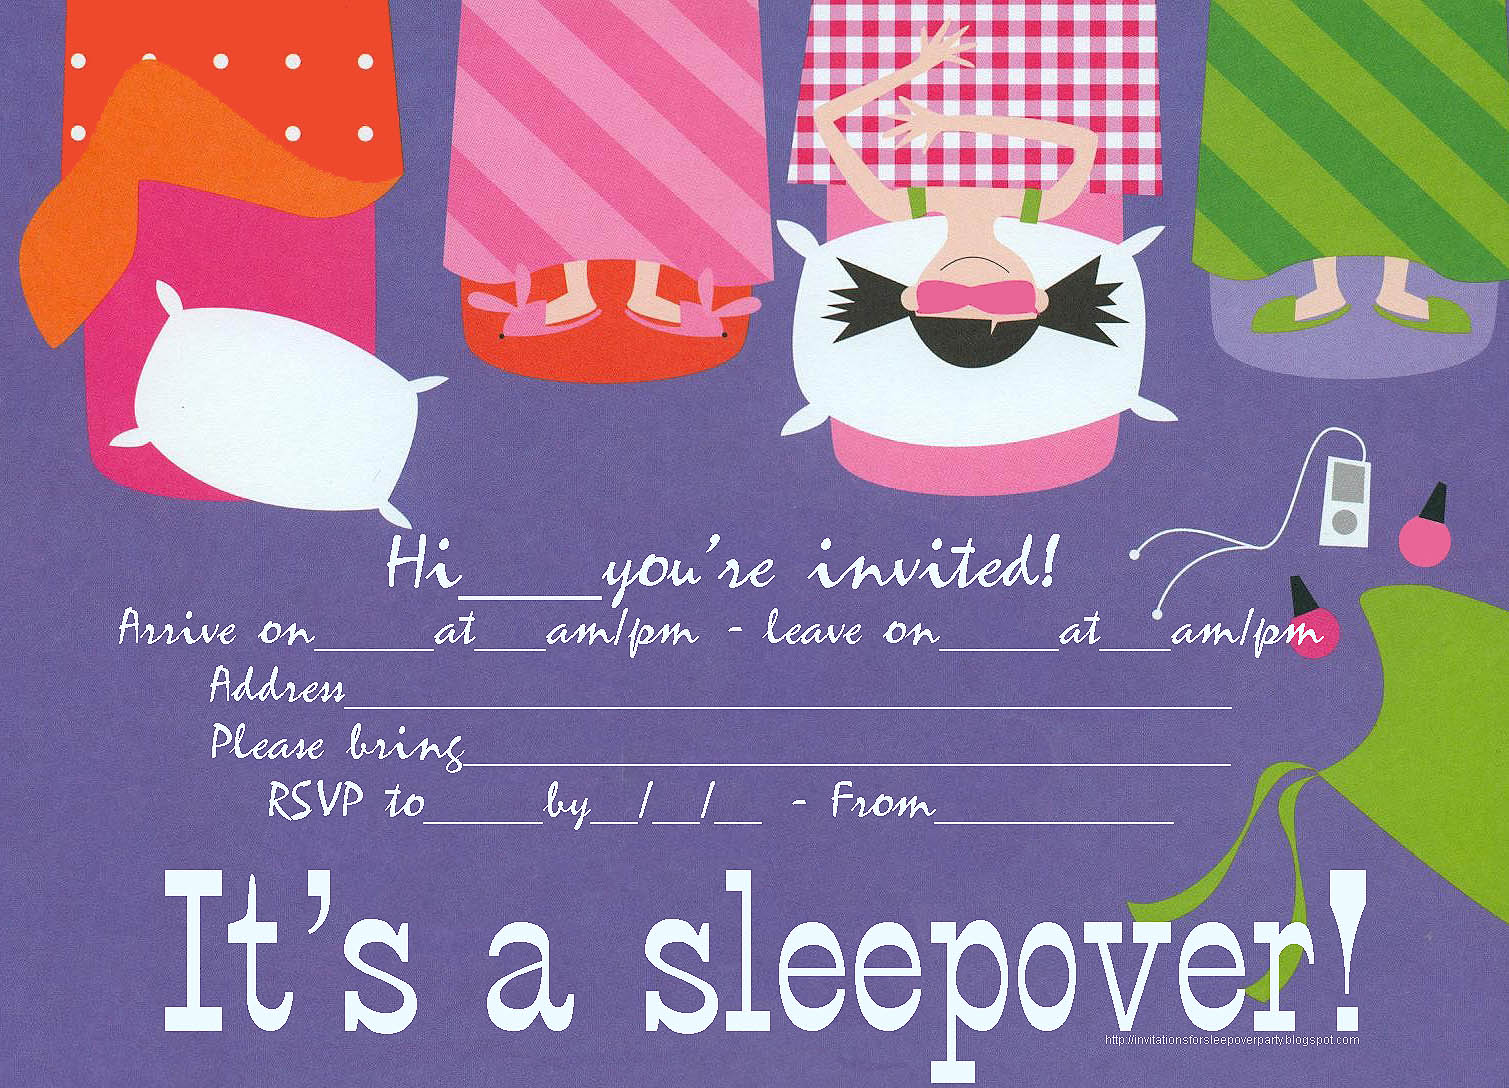 printable slumber party invitations, Party invitations